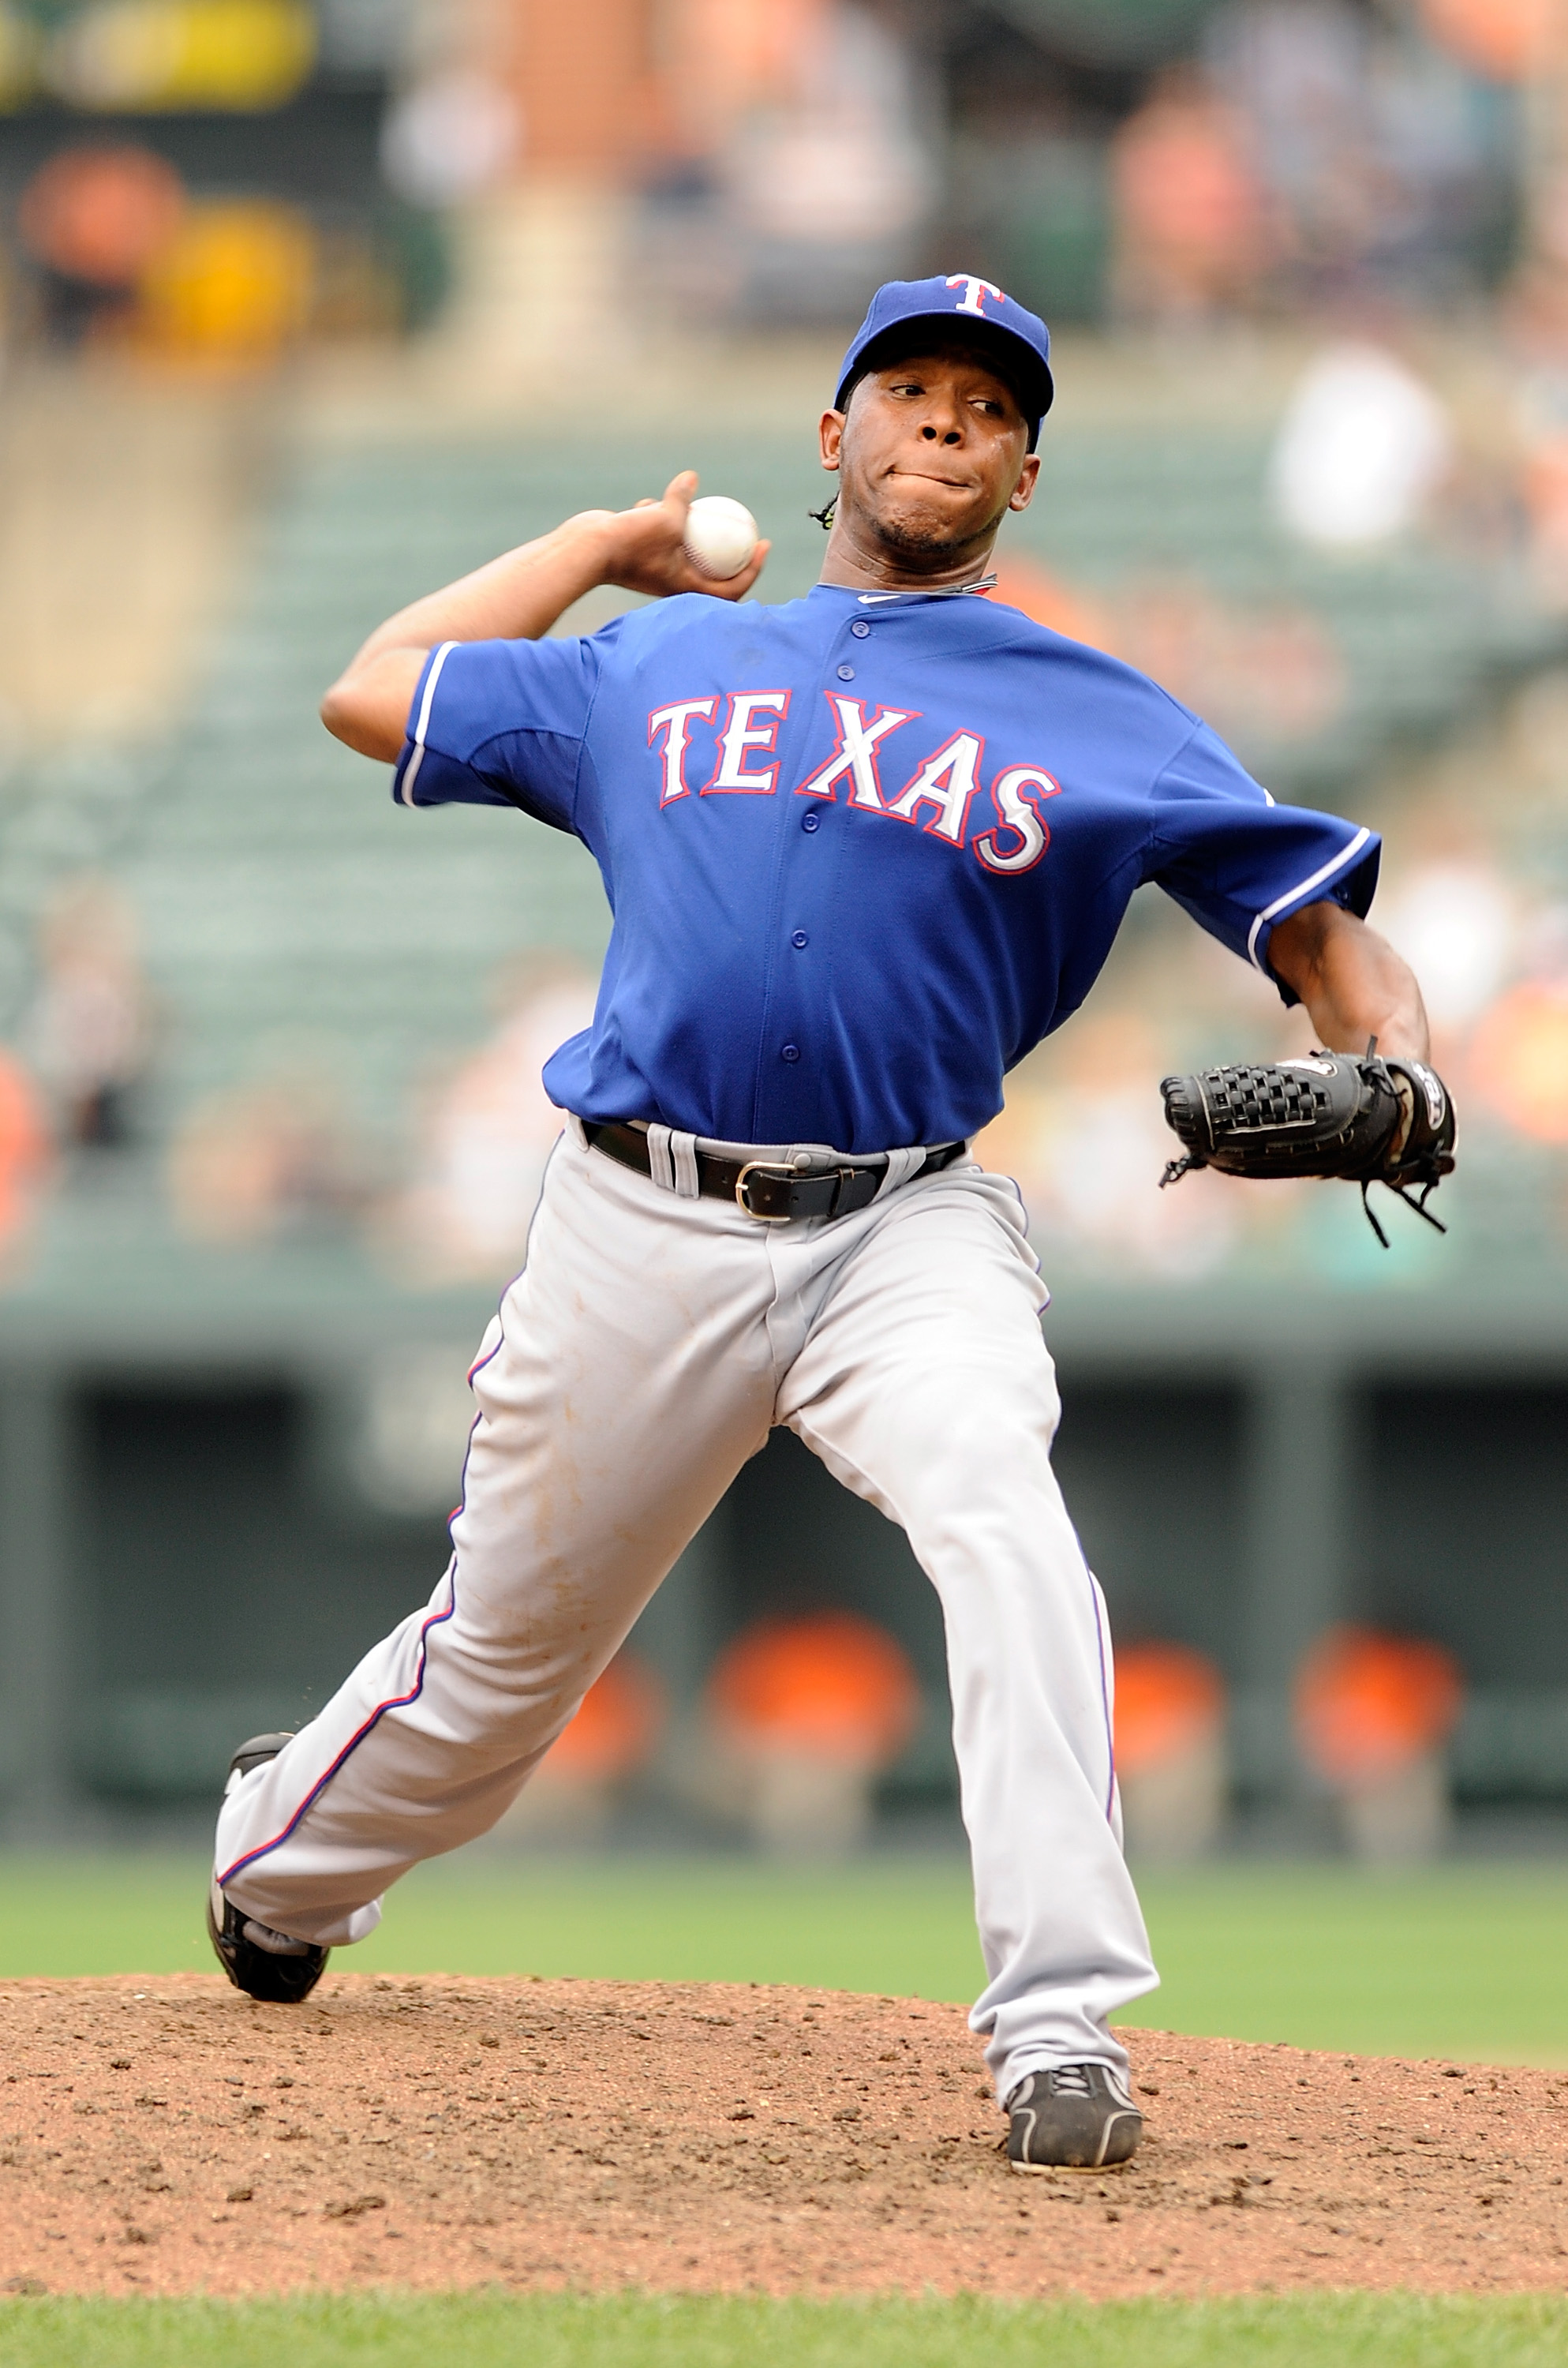 BALTIMORE - AUGUST 22:  Neftali Feliz #30 of the Texas Rangers pitches against the Baltimore Orioles at Camden Yards on August 22, 2010 in Baltimore, Maryland. The Rangers beat the Orioles 6-4.  (Photo by Greg Fiume/Getty Images)